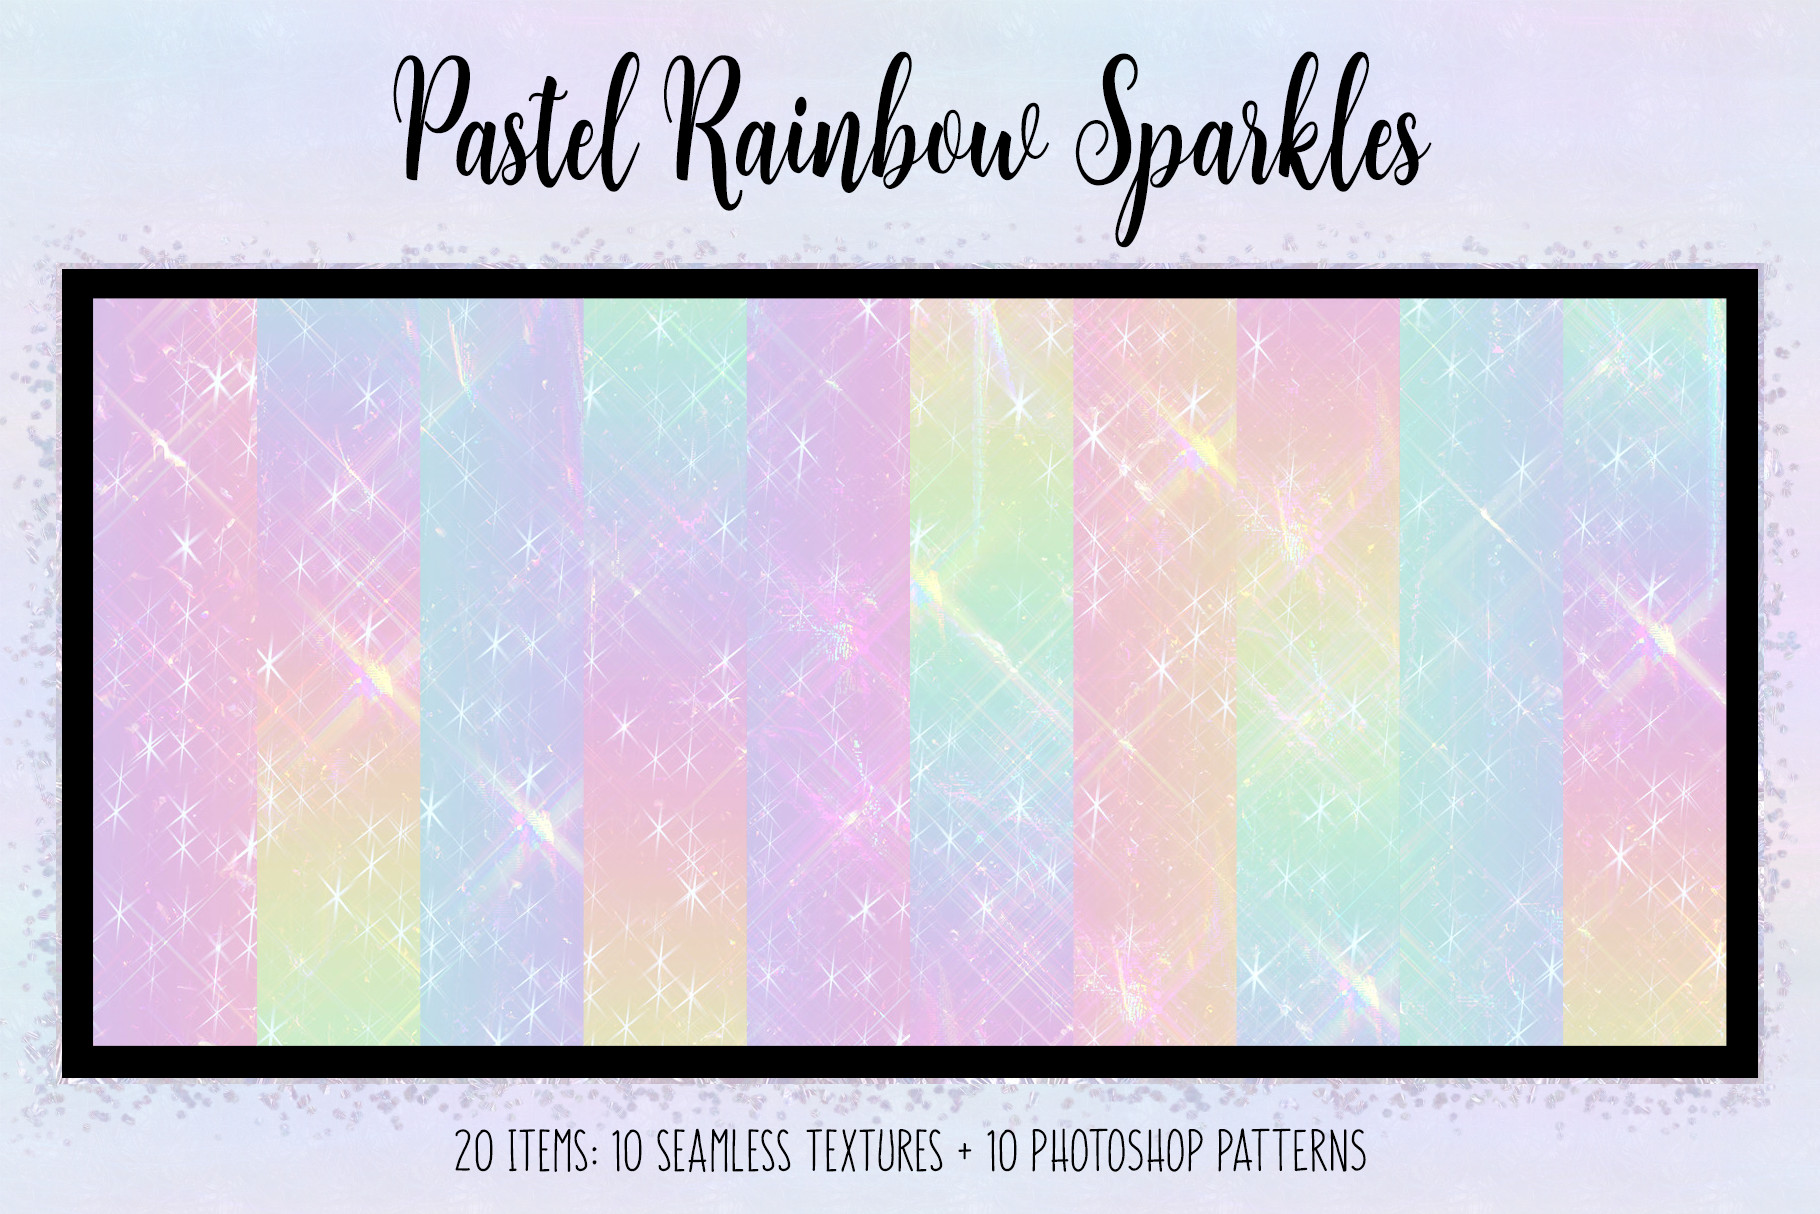 Download Free Pastel Rainbow Sparkles Graphic By Juliecampbelldesigns for Cricut Explore, Silhouette and other cutting machines.